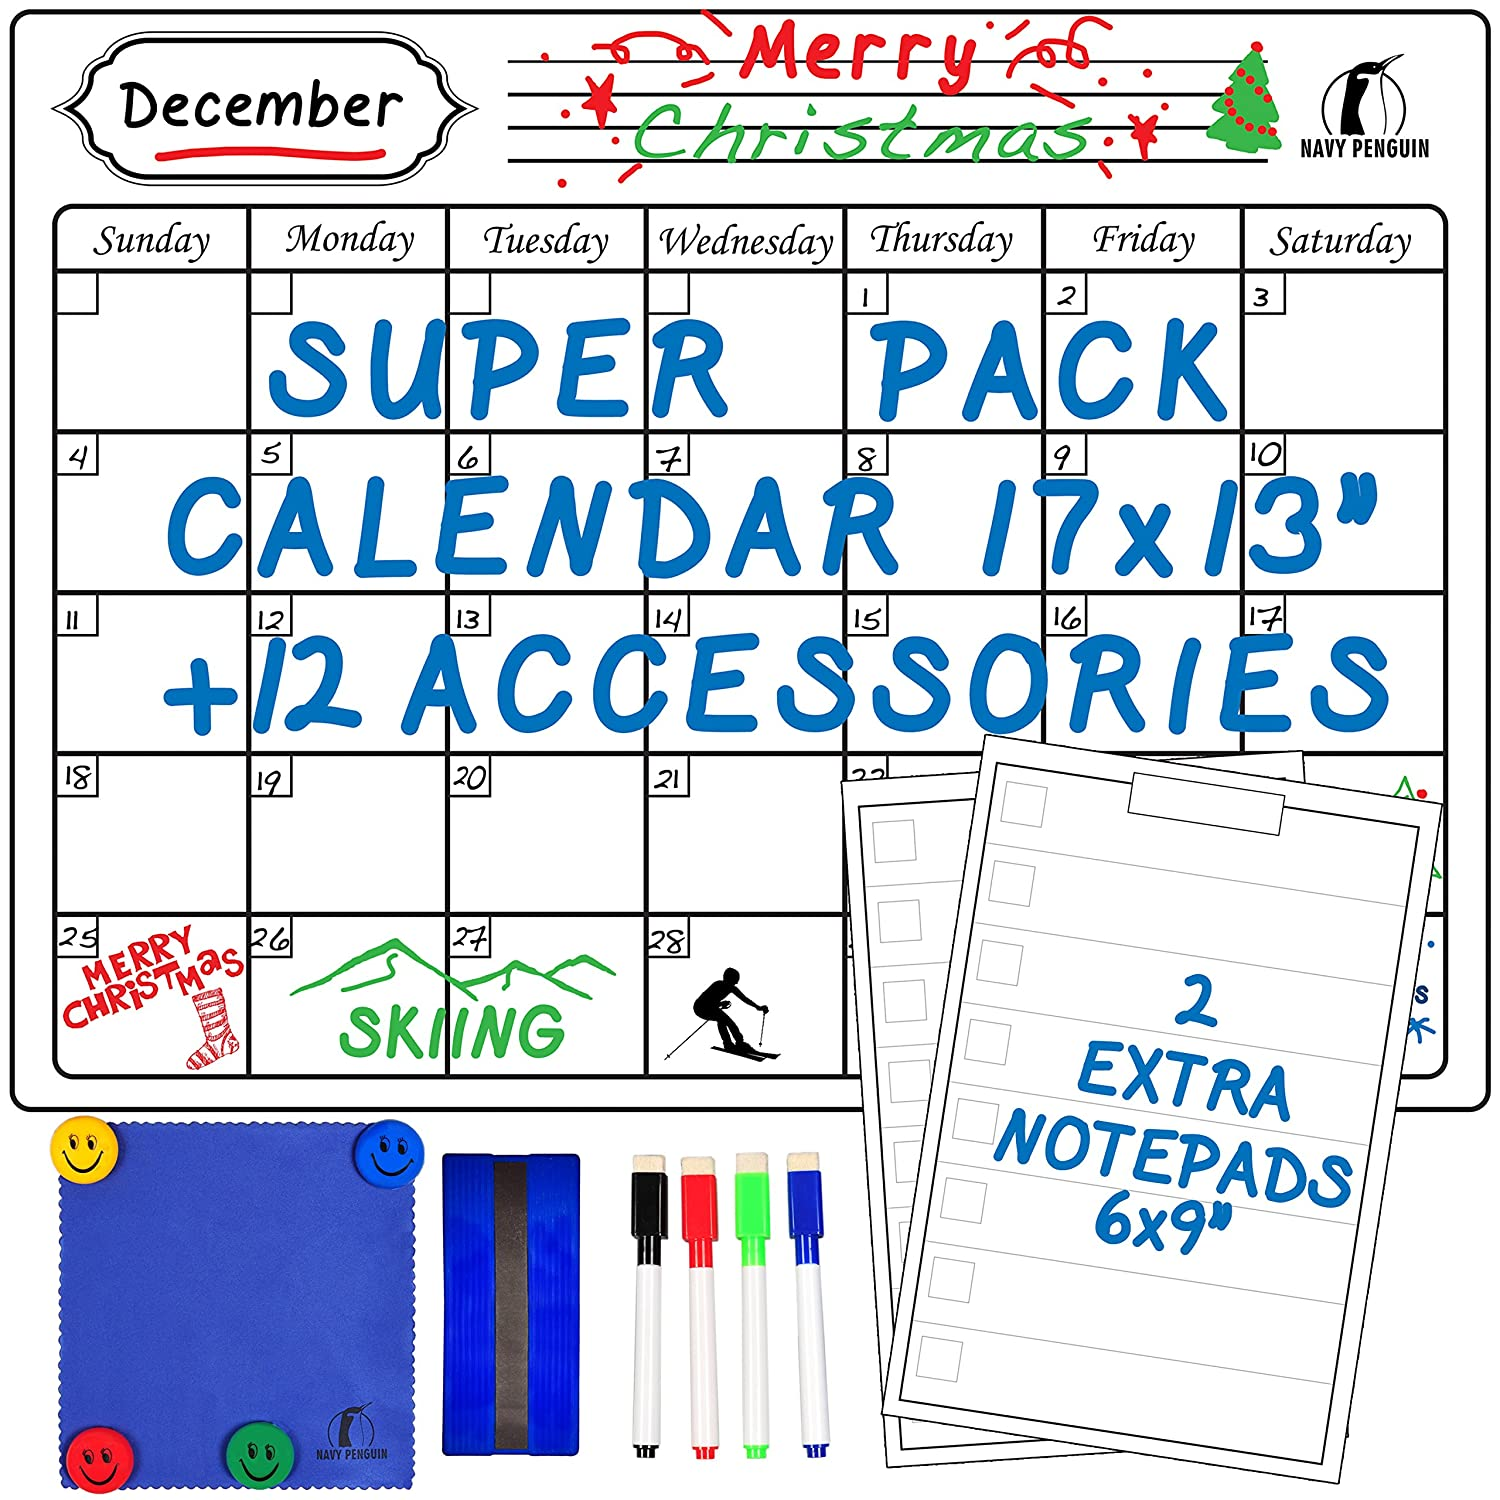 Whiteboard Monthly Calendar Set - Magnetic White Board Calendar 17x13 + 2 Dry Erase Notepads 6x9 + 1 Dry Eraser, 1 Cloth, 4 Dry Wipe Markers, 4 Magnets - Fridge Grocery List for Kitchen Navy Penguin